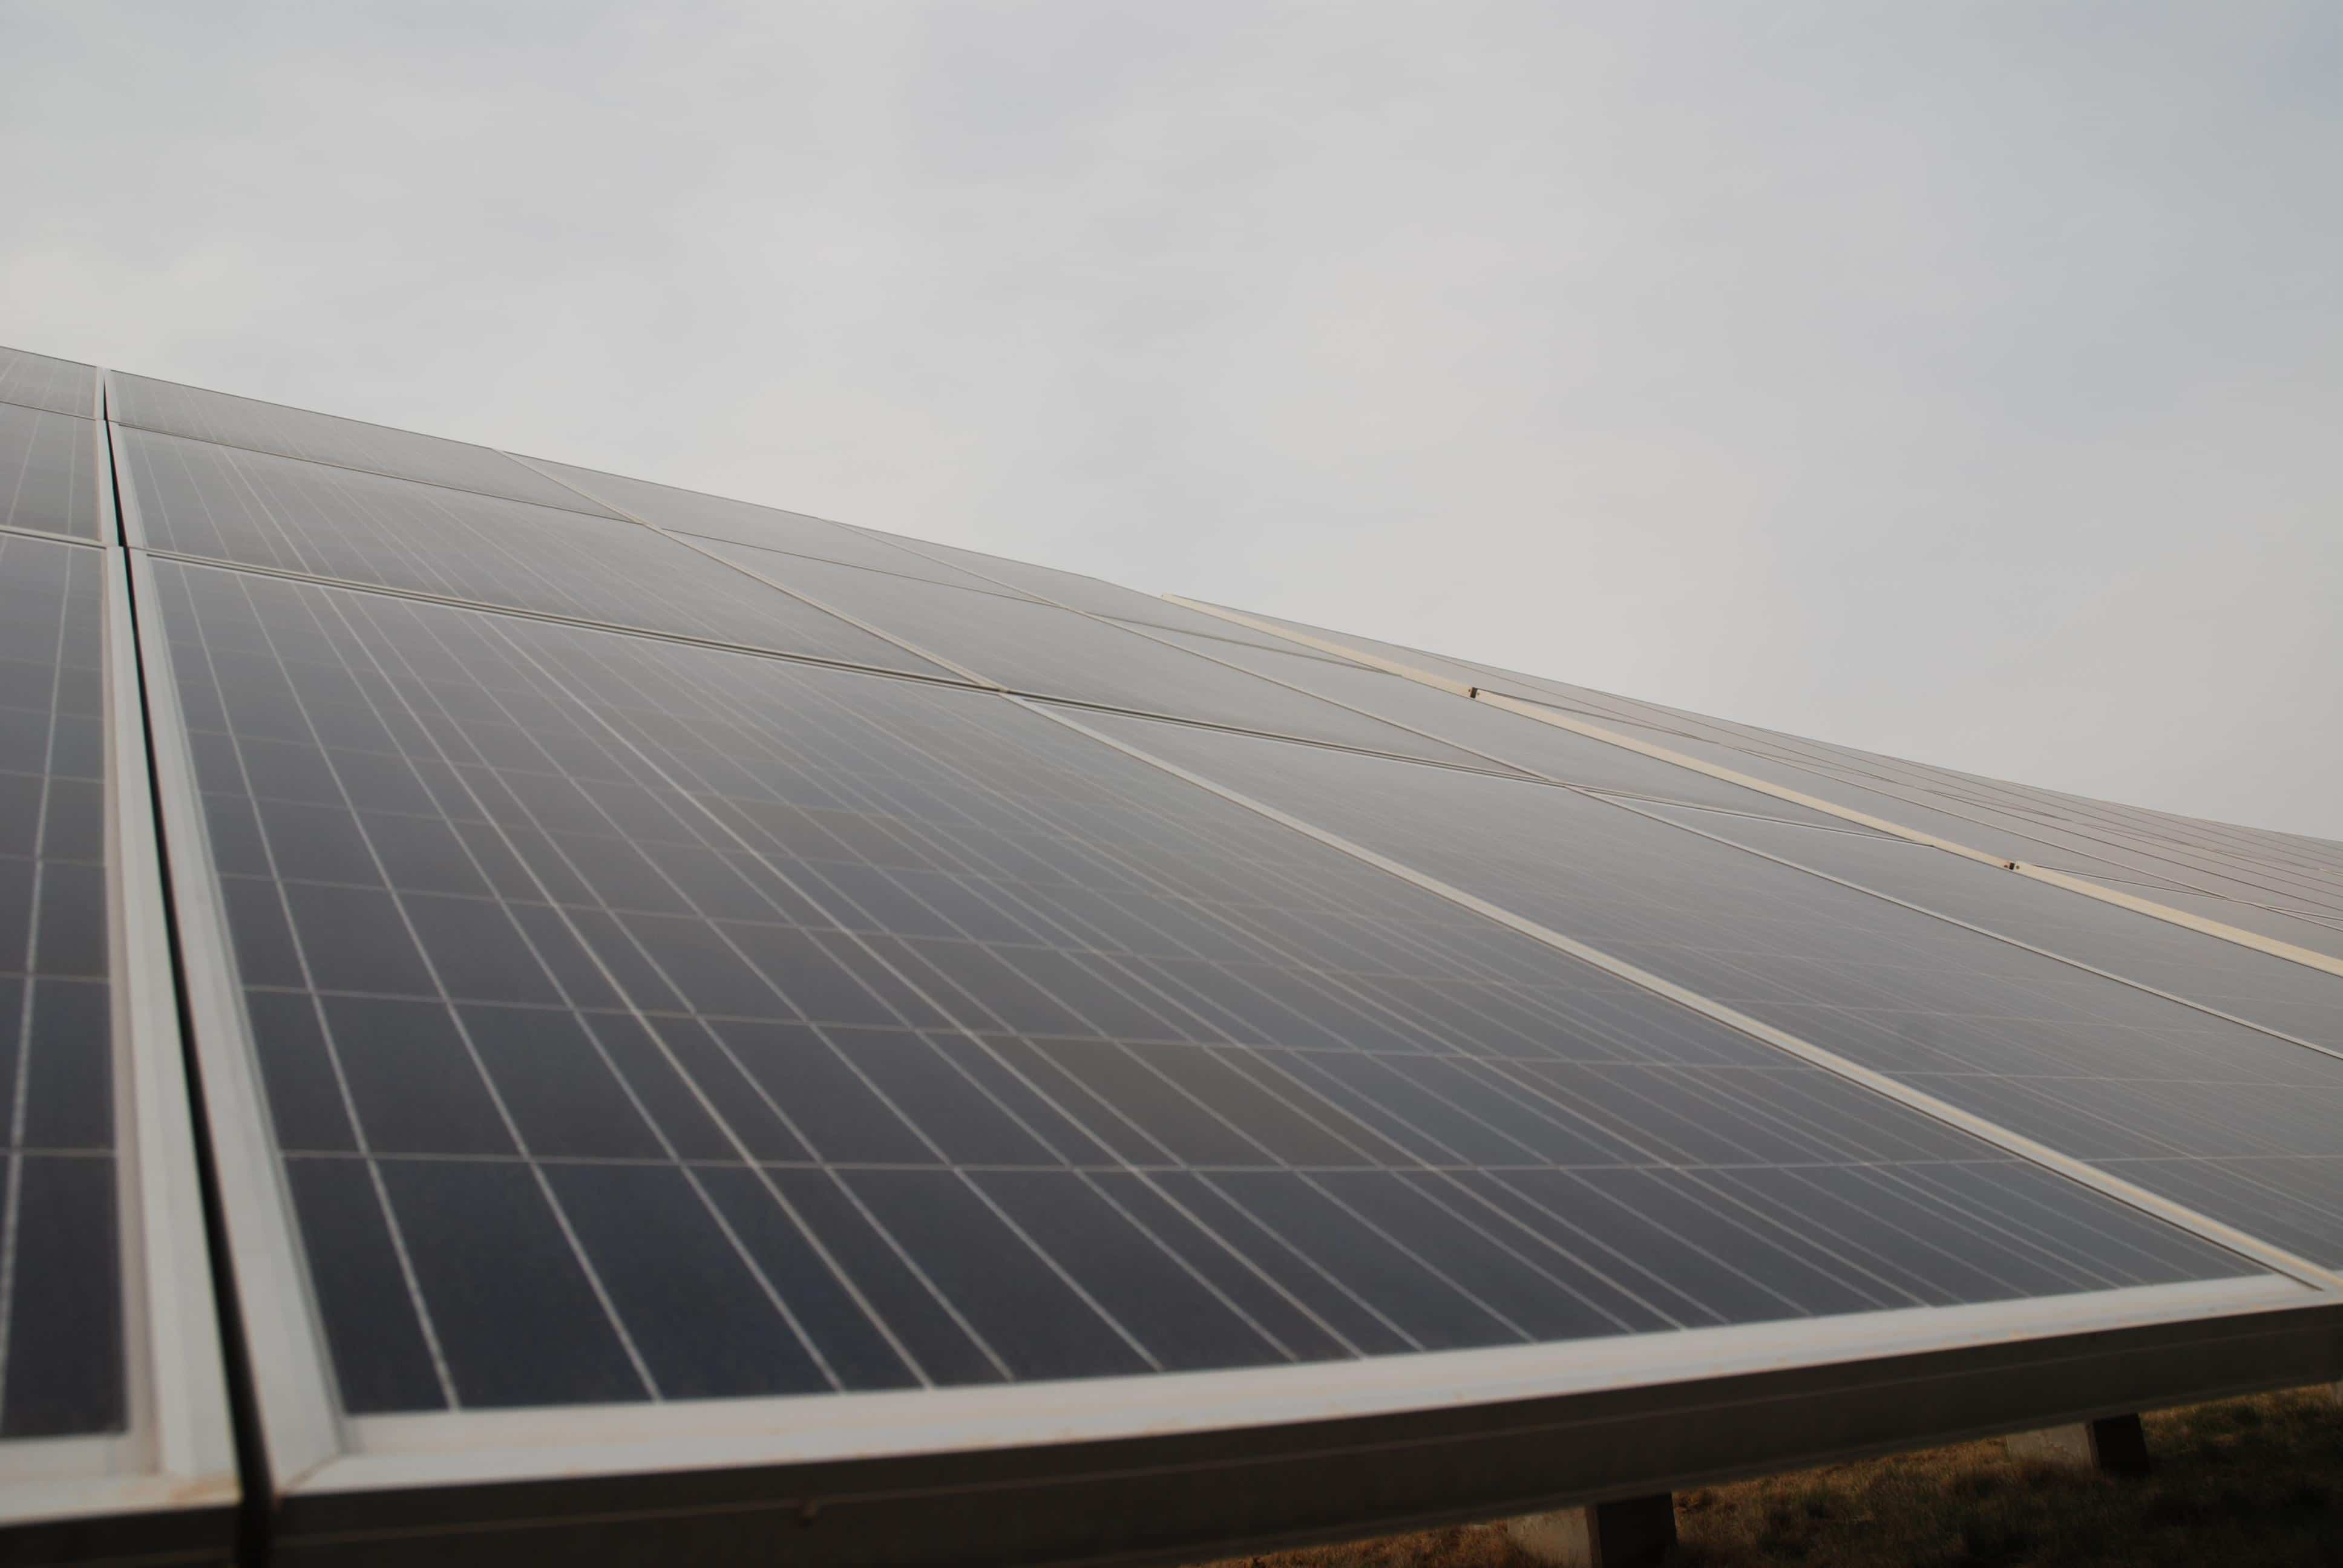 solar car roofs could provide a sustainable solution for the electricity demands of electric cars